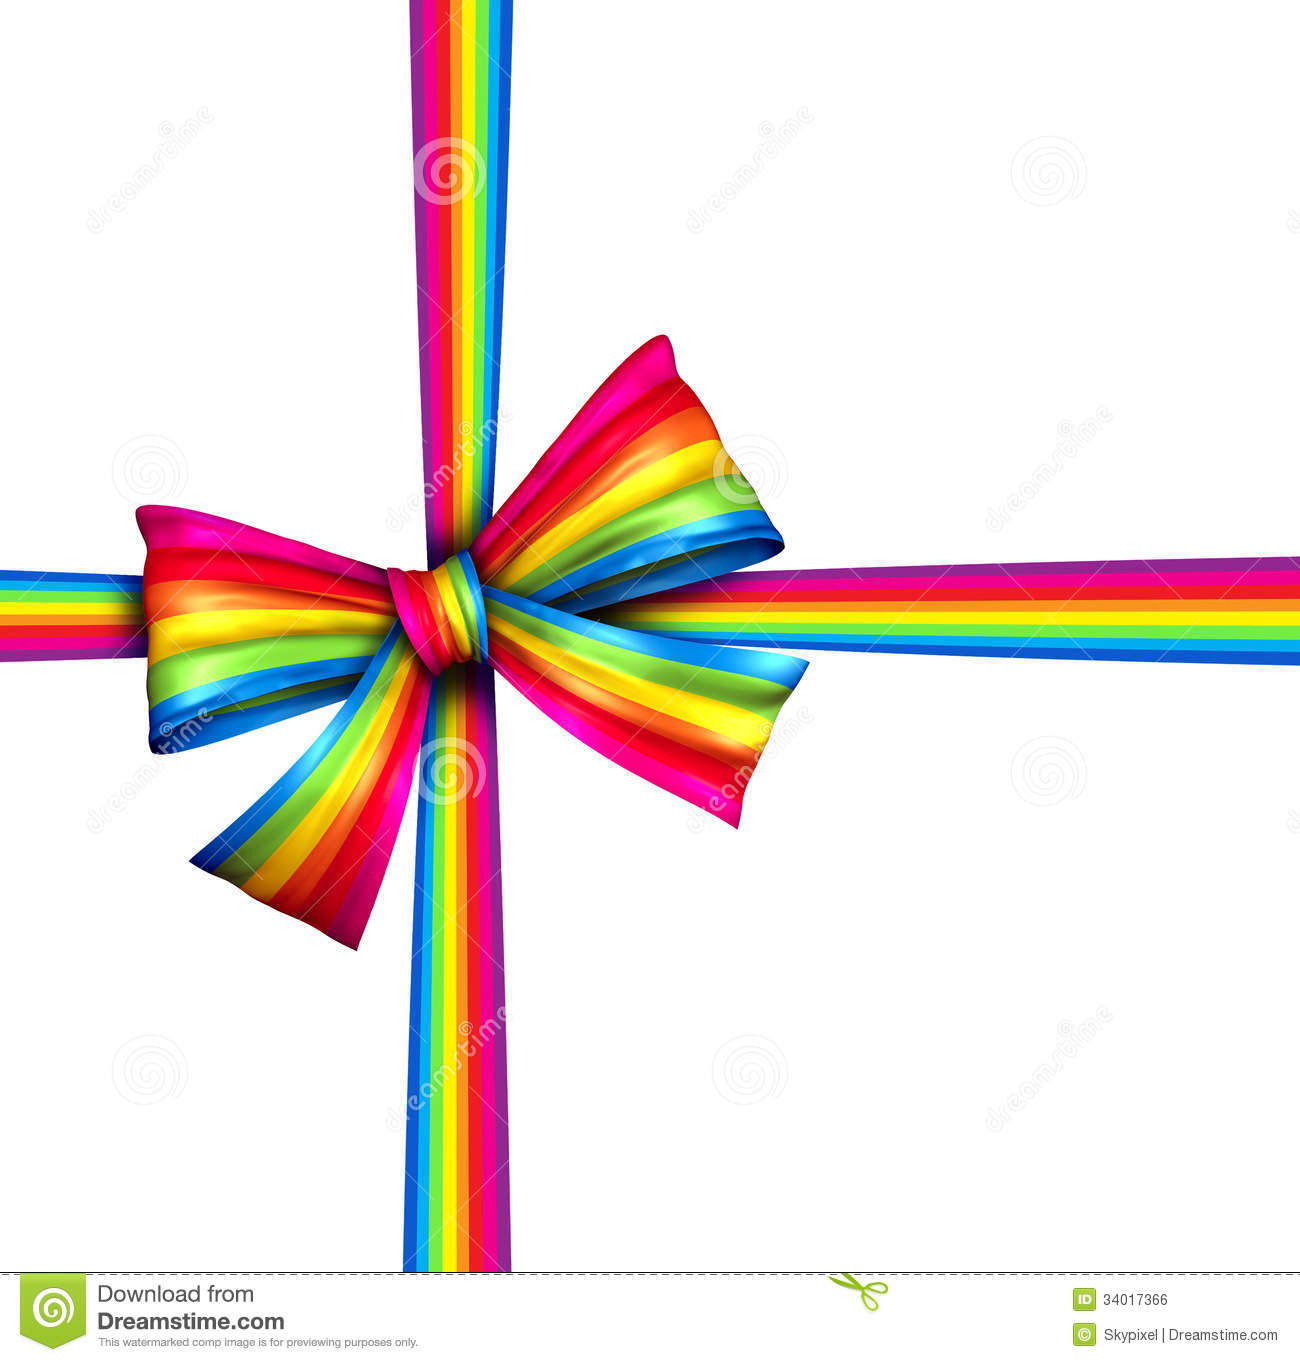 Silk present with wrapping tape of bright spectrum colors as an award